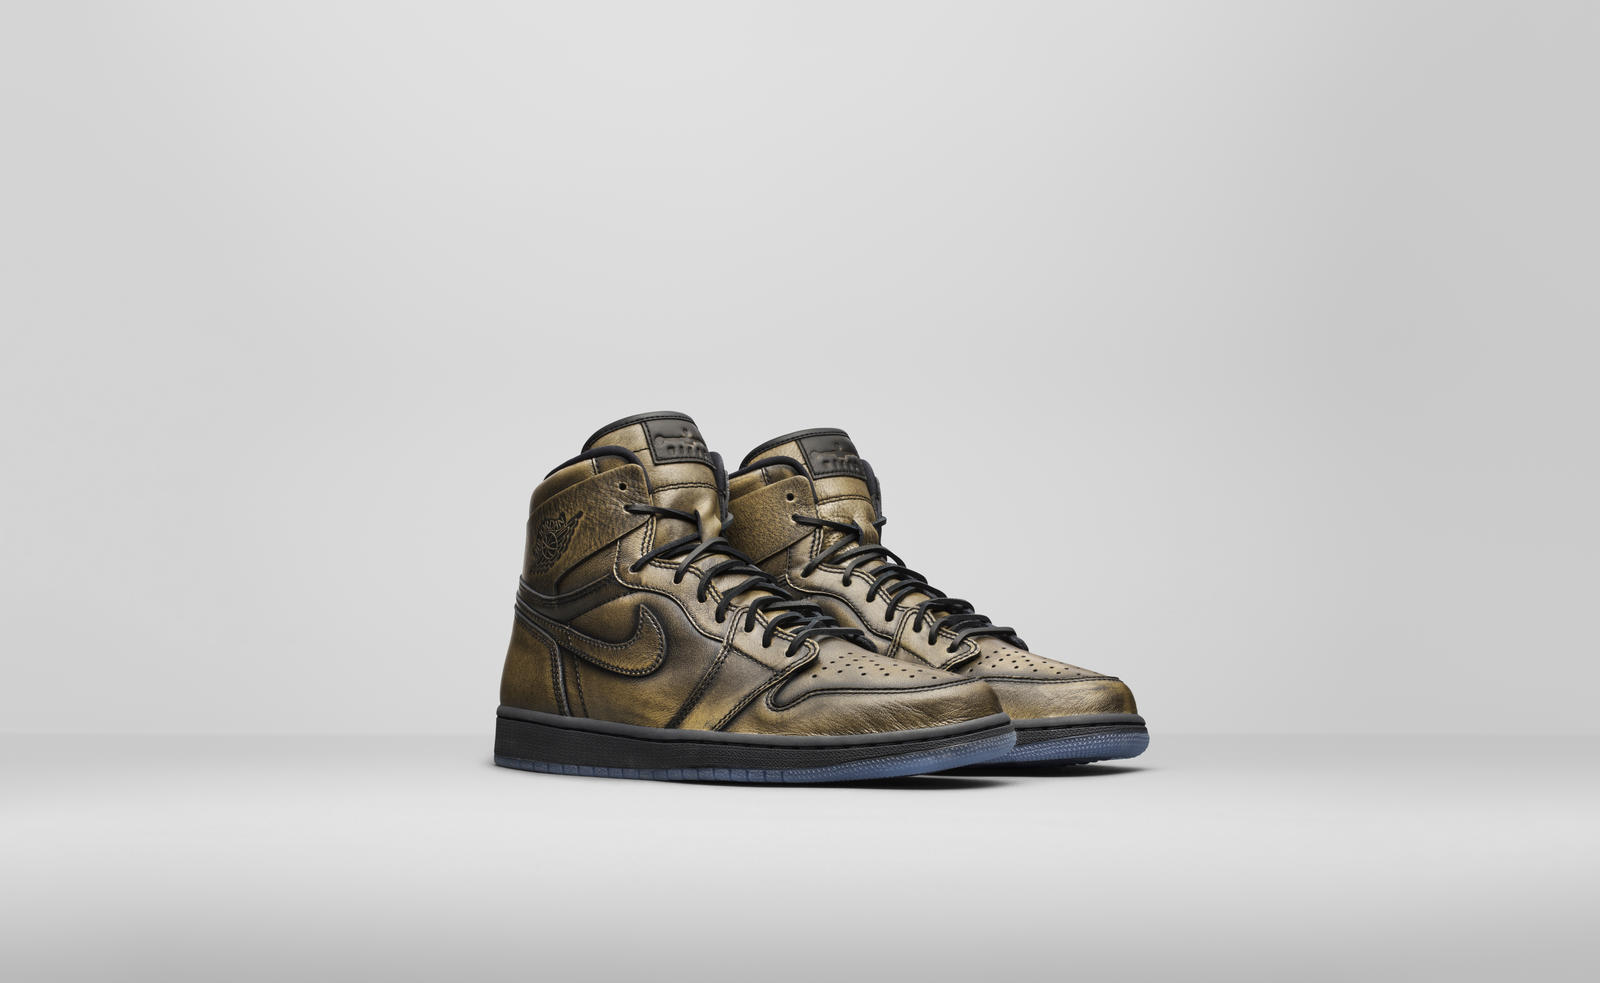 013a9d3d5e99 ... good the air jordan 1 wings will be available may 17. are you looking  forward